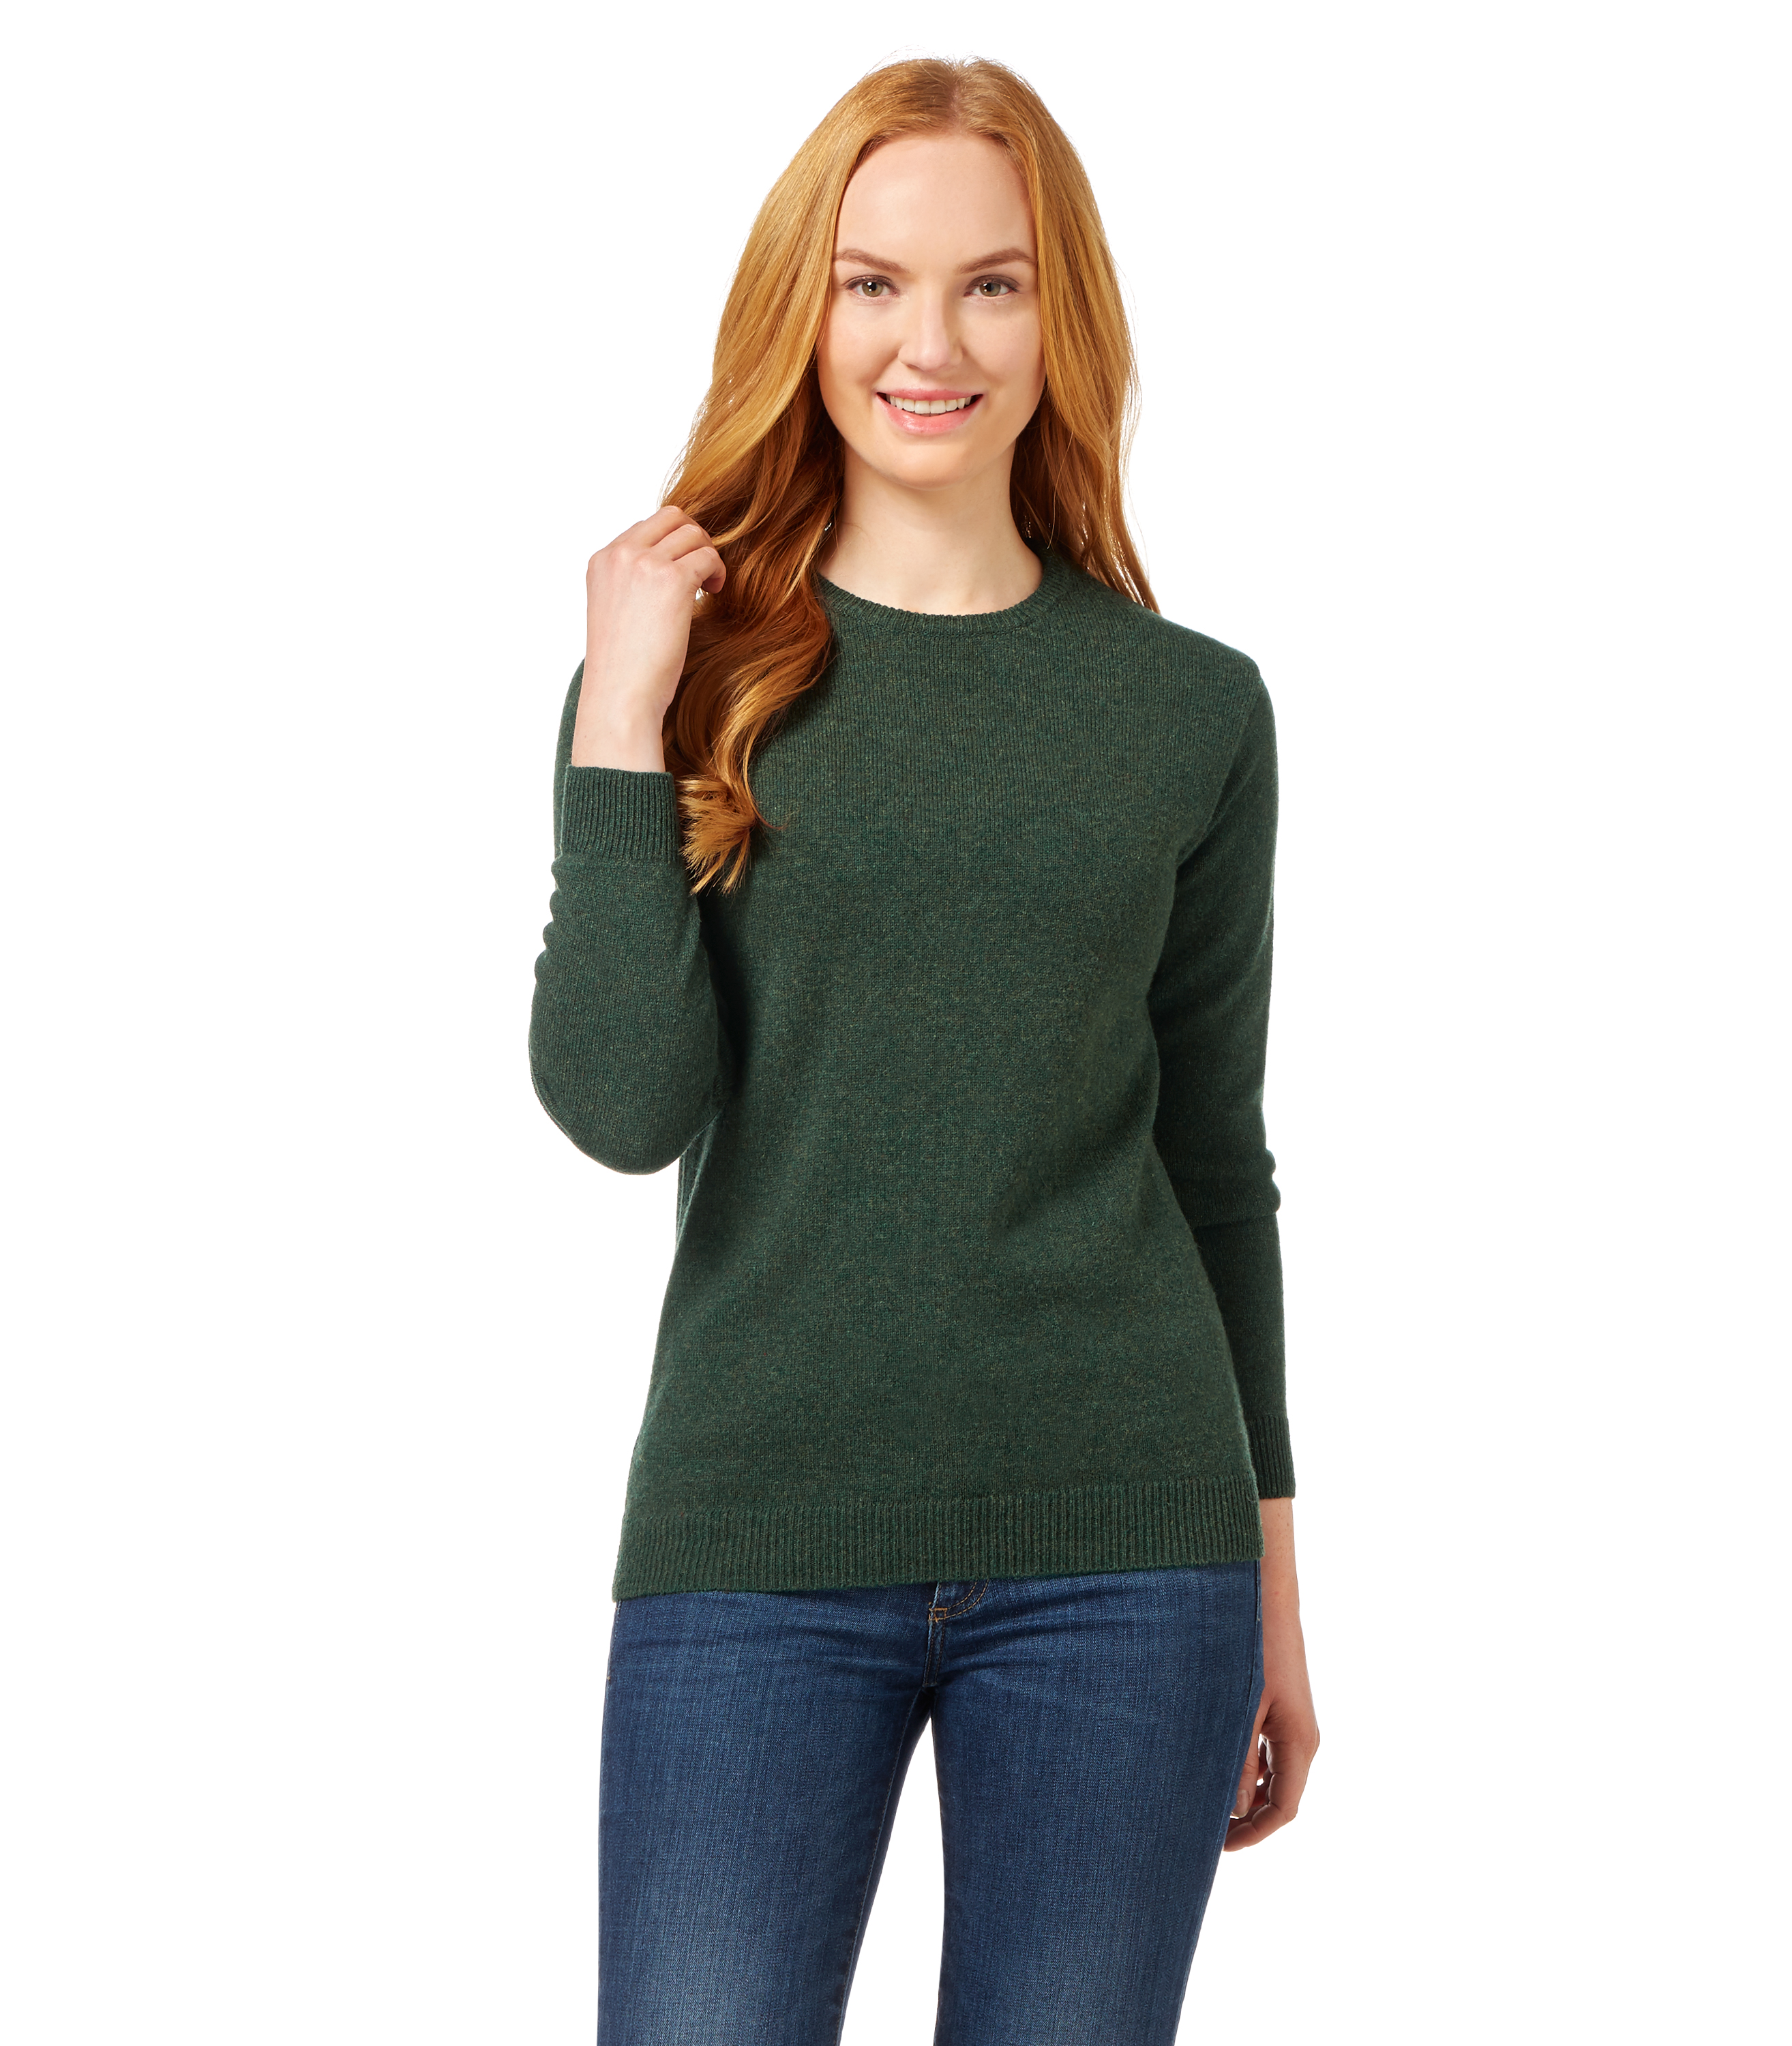 Stay warm in a cute sweater! Whether you're seeking a classic cardigan, a pretty pullover, or something to throw on when you get chilly, our selection of women's sweaters is sure to warm your heart.